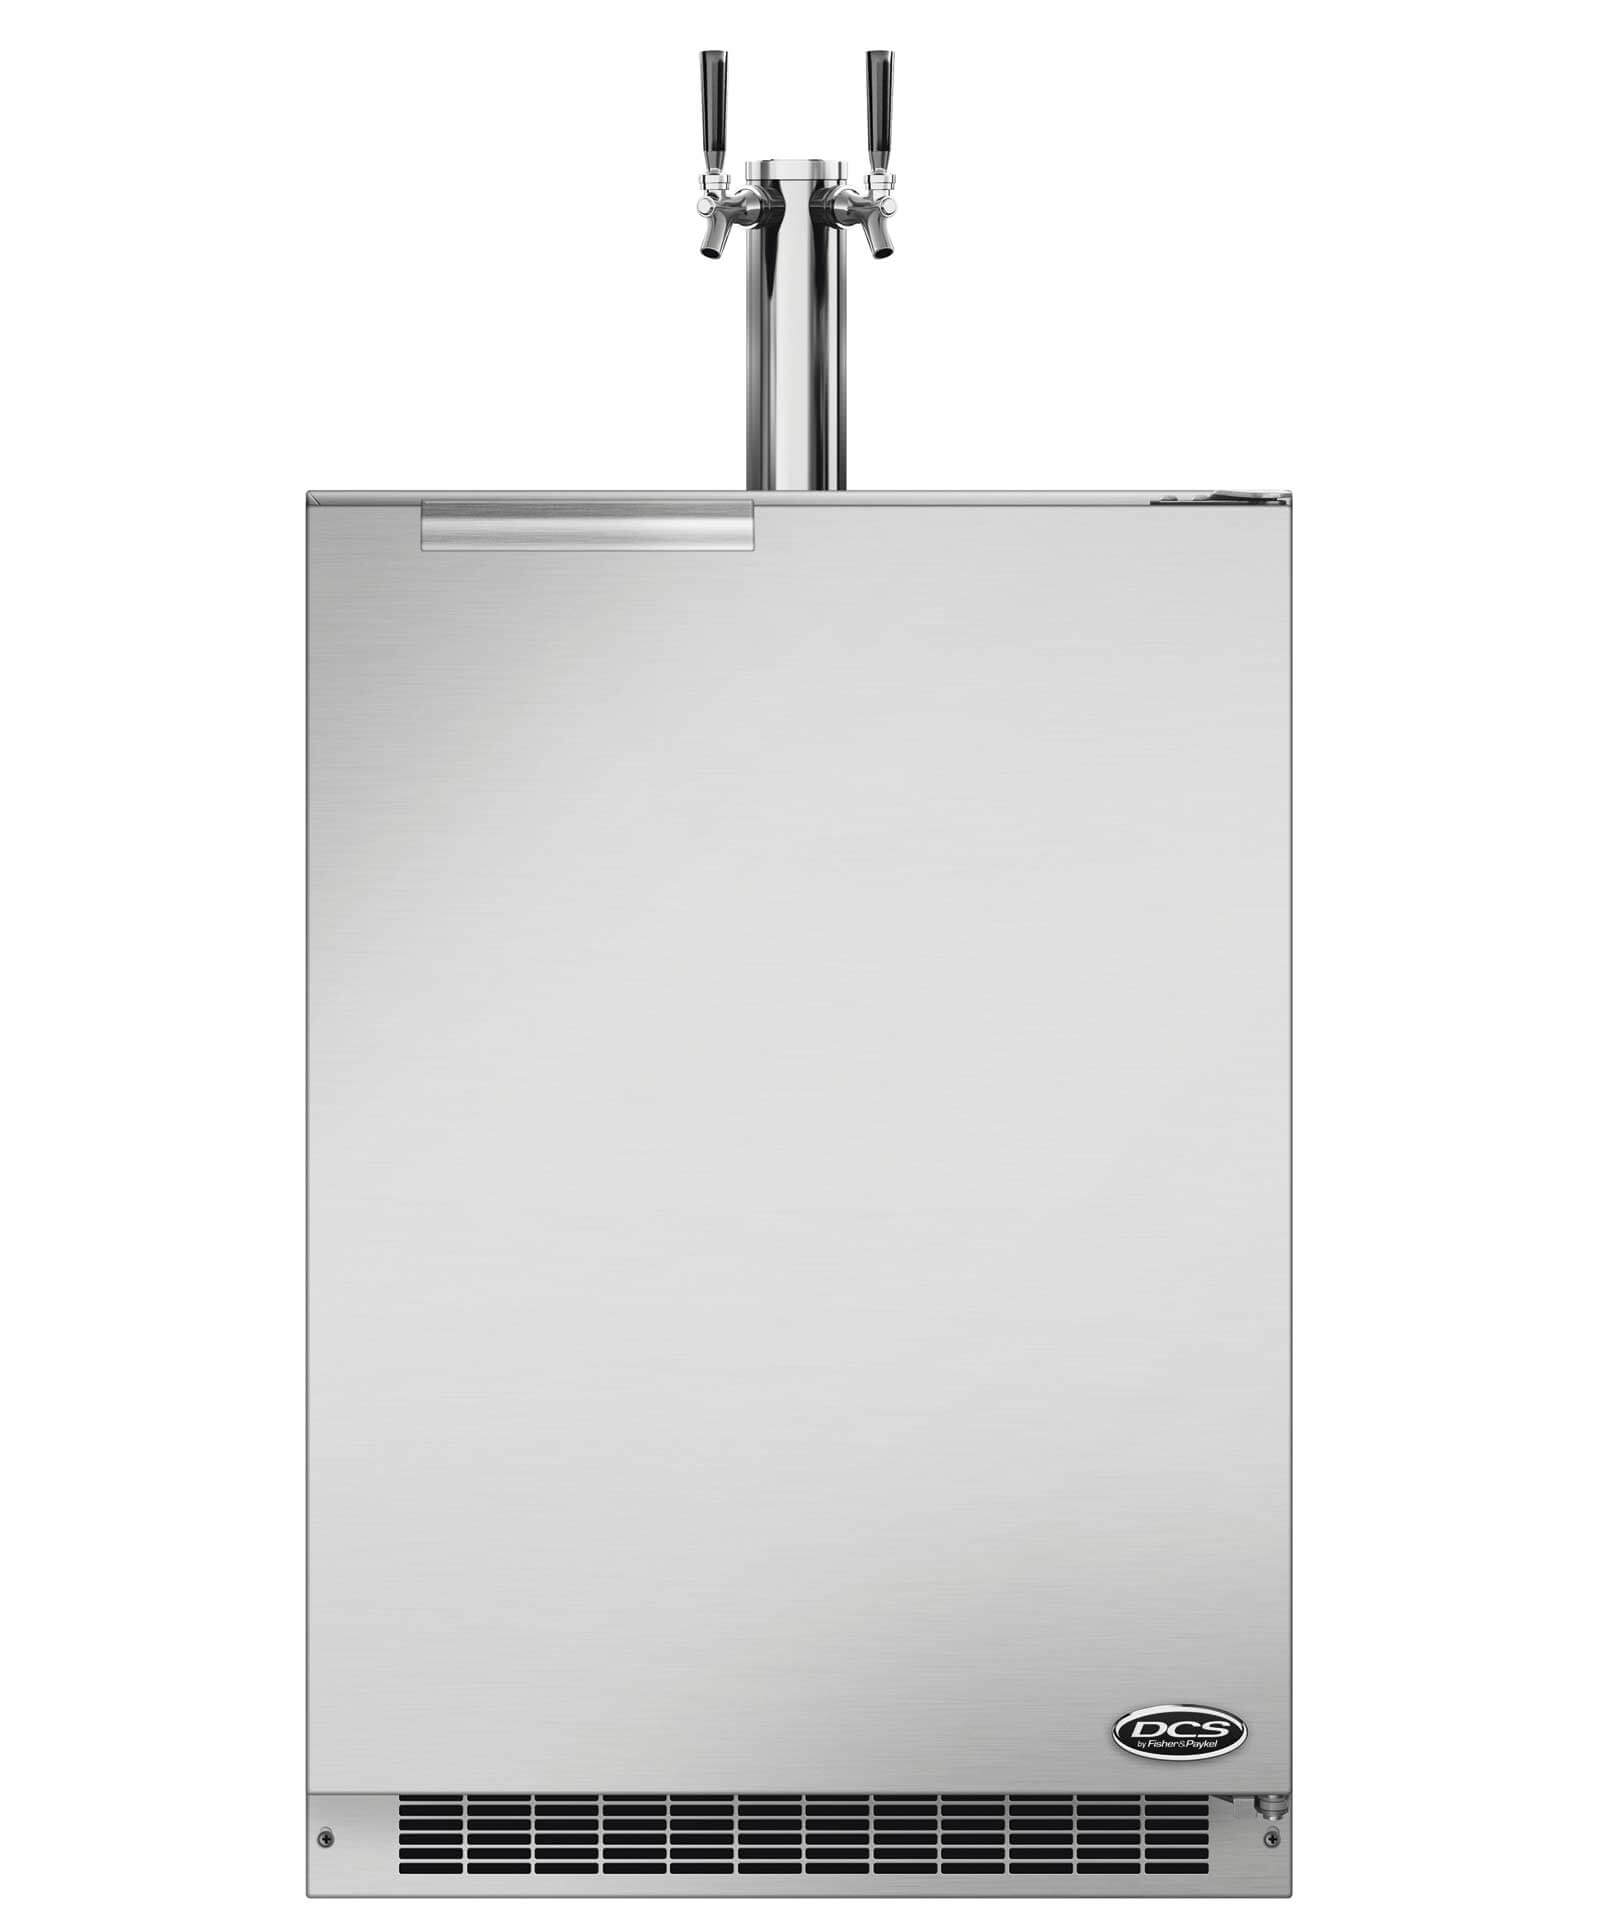 "DCS 24"" Outdoor Beer Dispenser - Dual Tap"